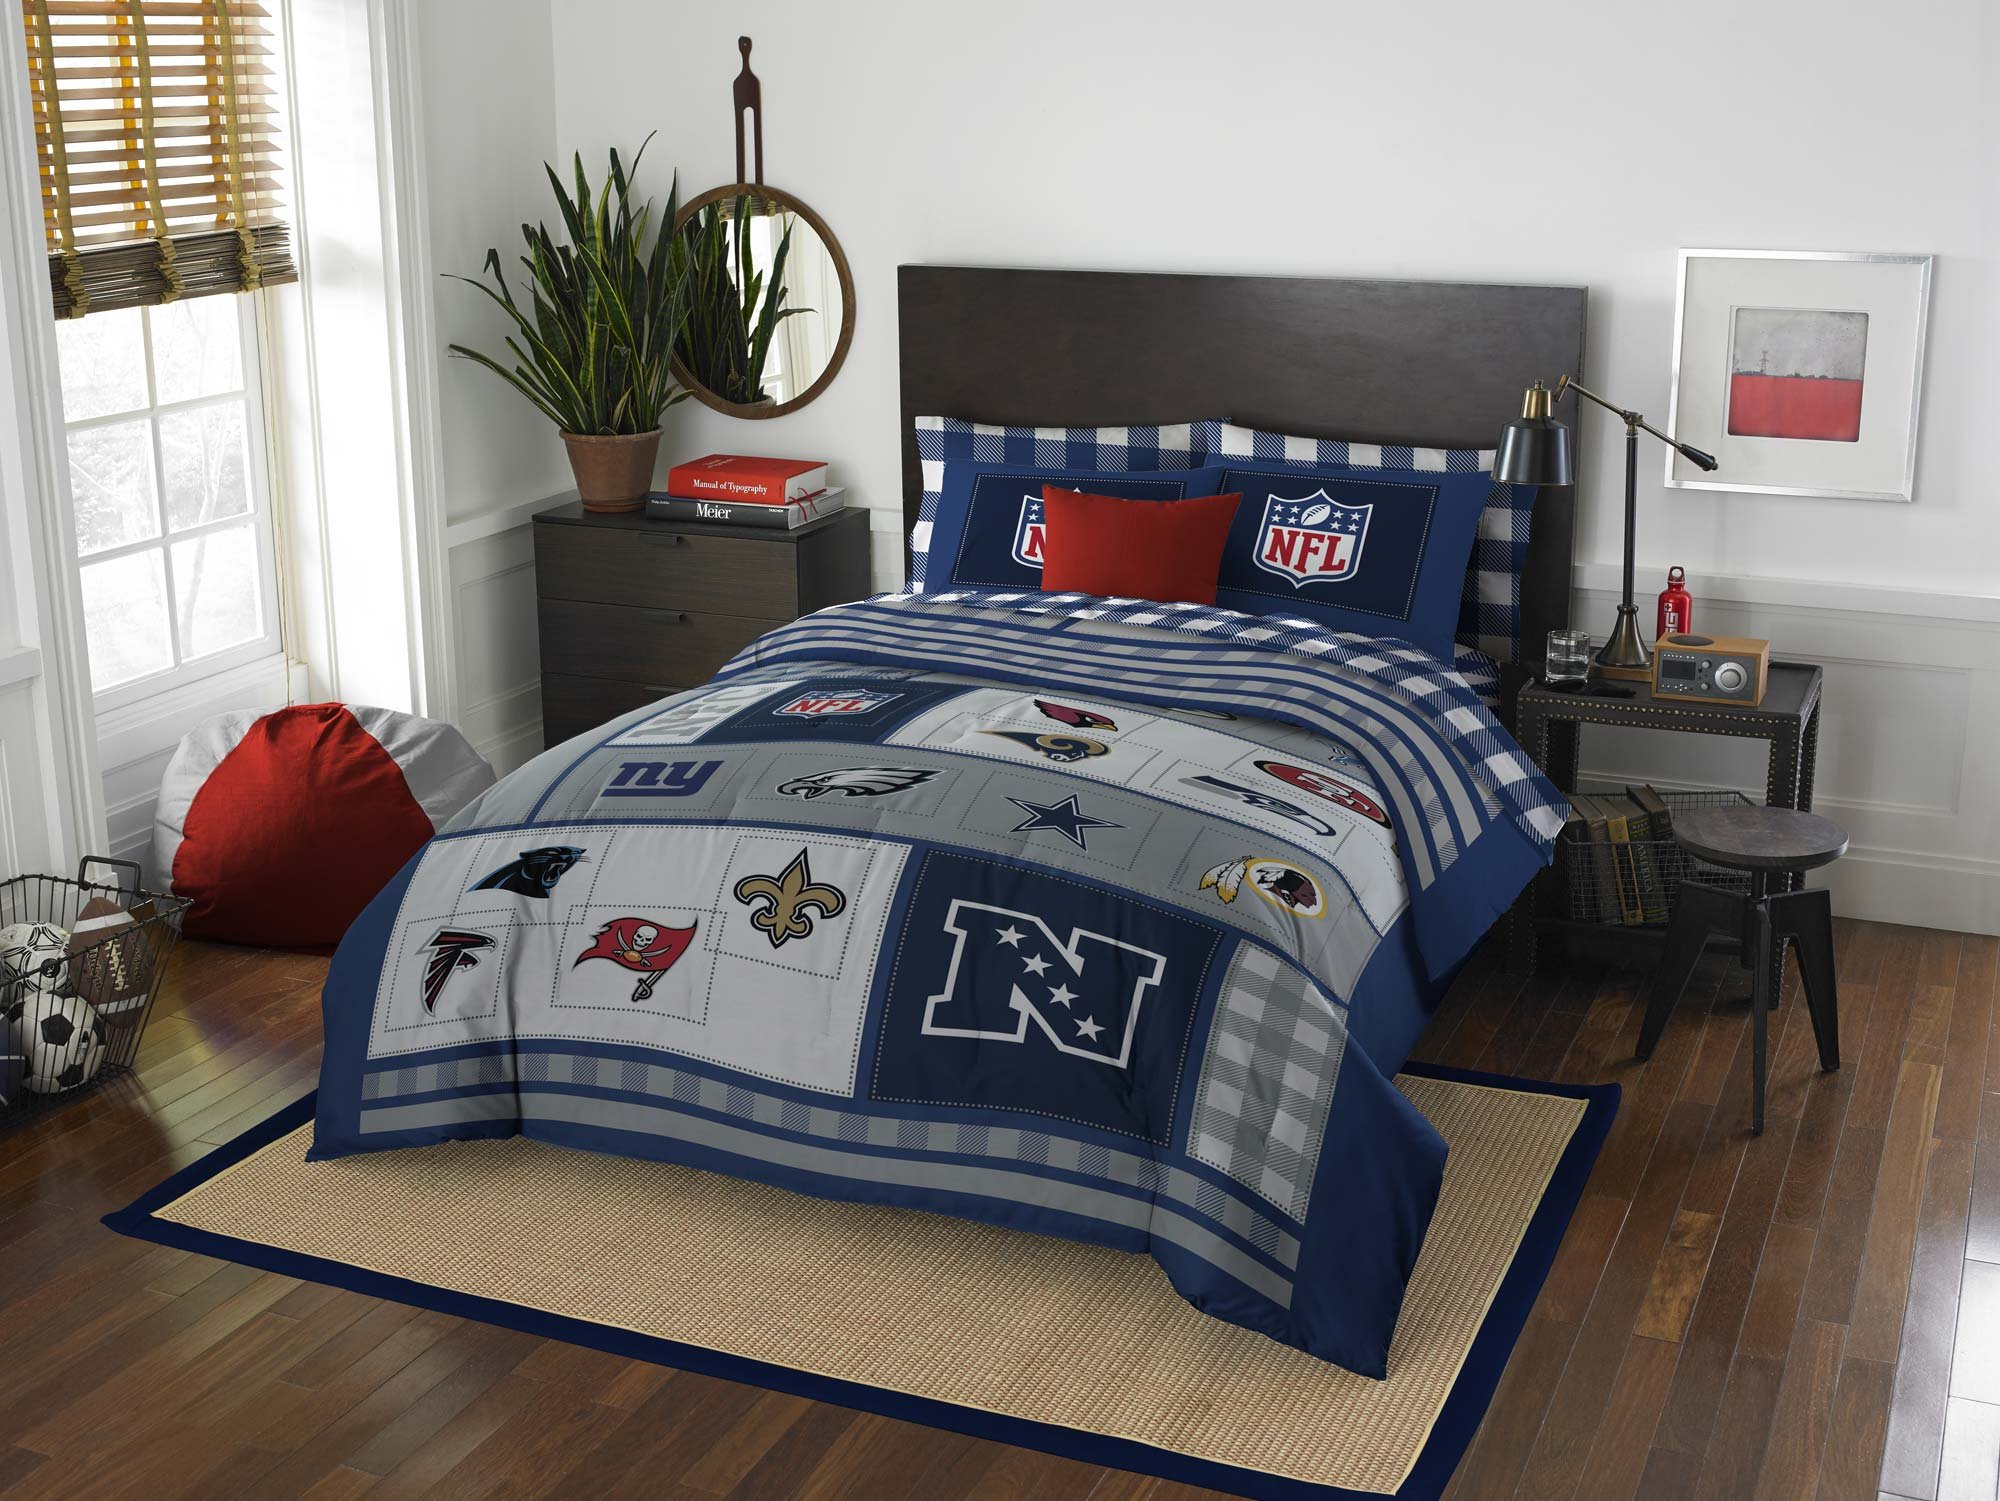 NFL Bedding Set Football AFC vs NFC Comforter Sheets and Sham (Full)